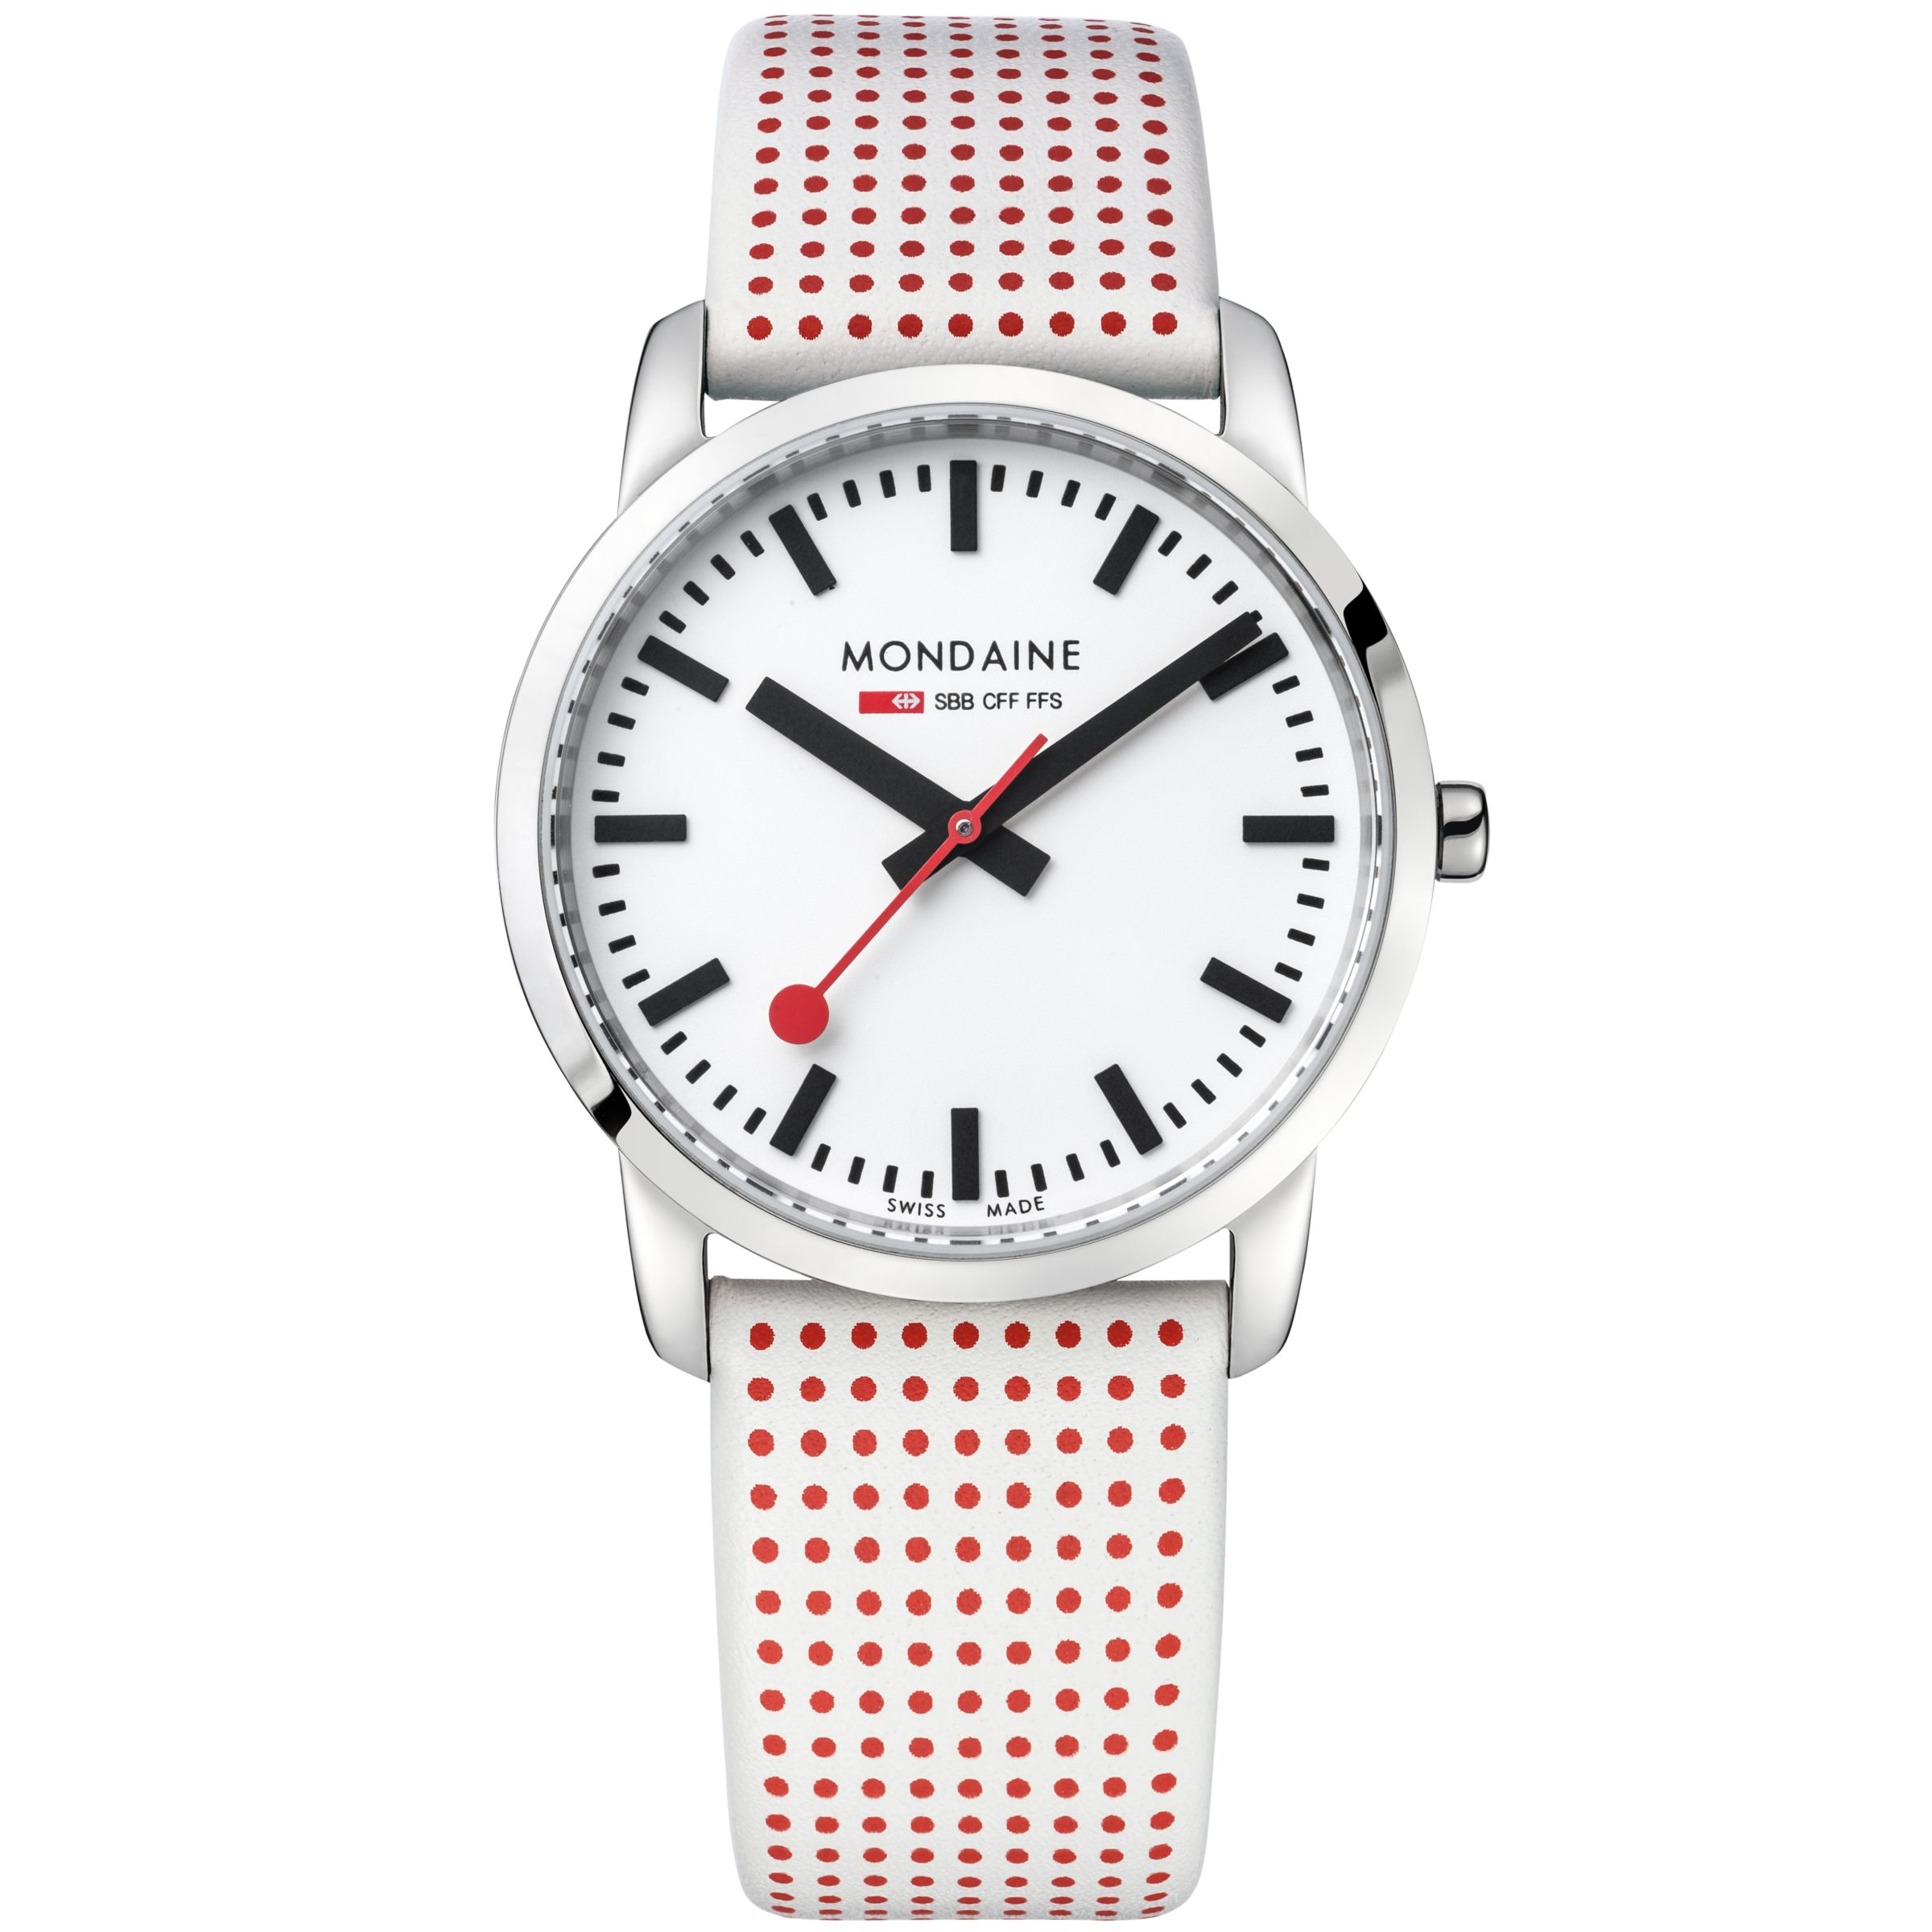 Mondaine Mondaine A400.30351.11SBA Unisex Simply Elegant Leather Strap Watch, White/Red